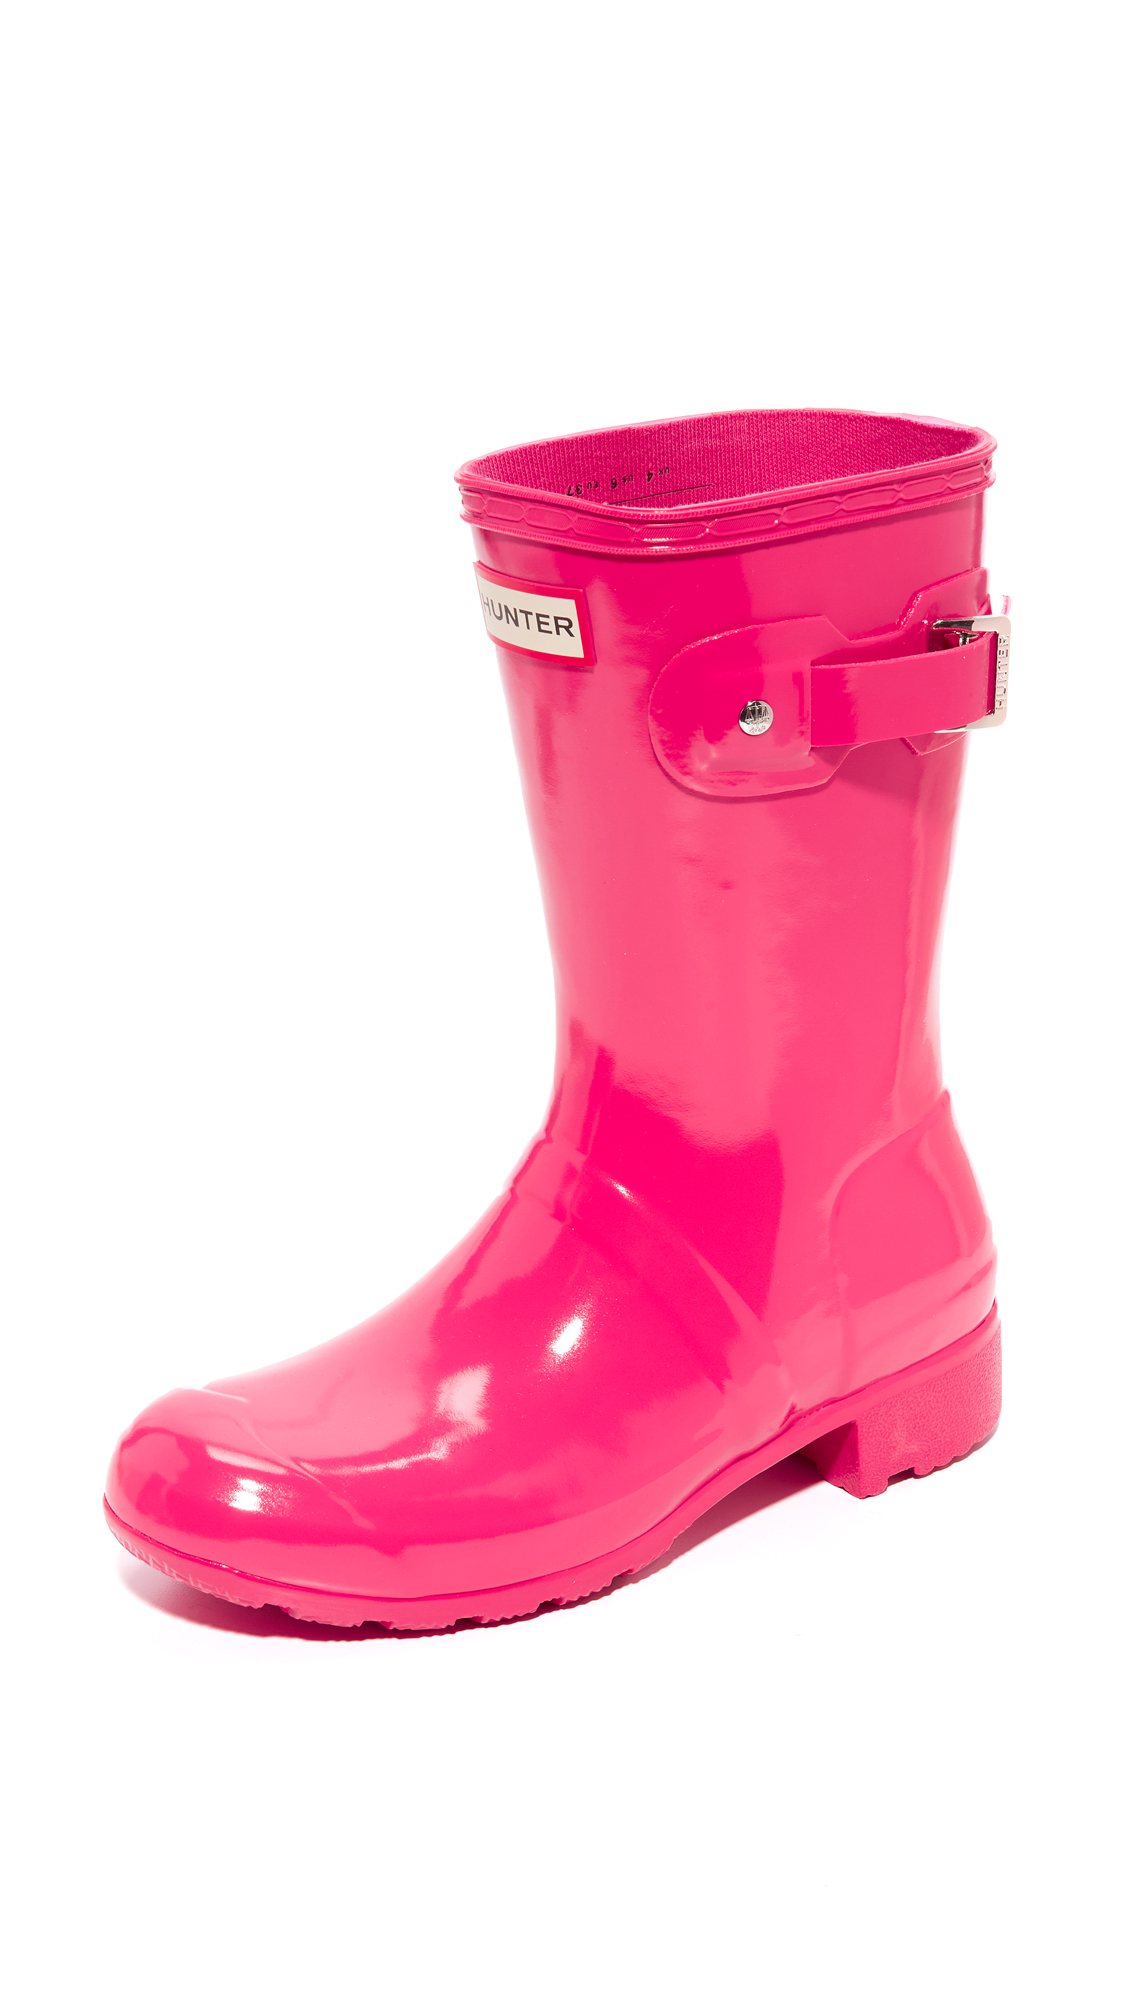 Hunter Boots Original Tour Short Gloss Boots - Mosse Pink at Shopbop